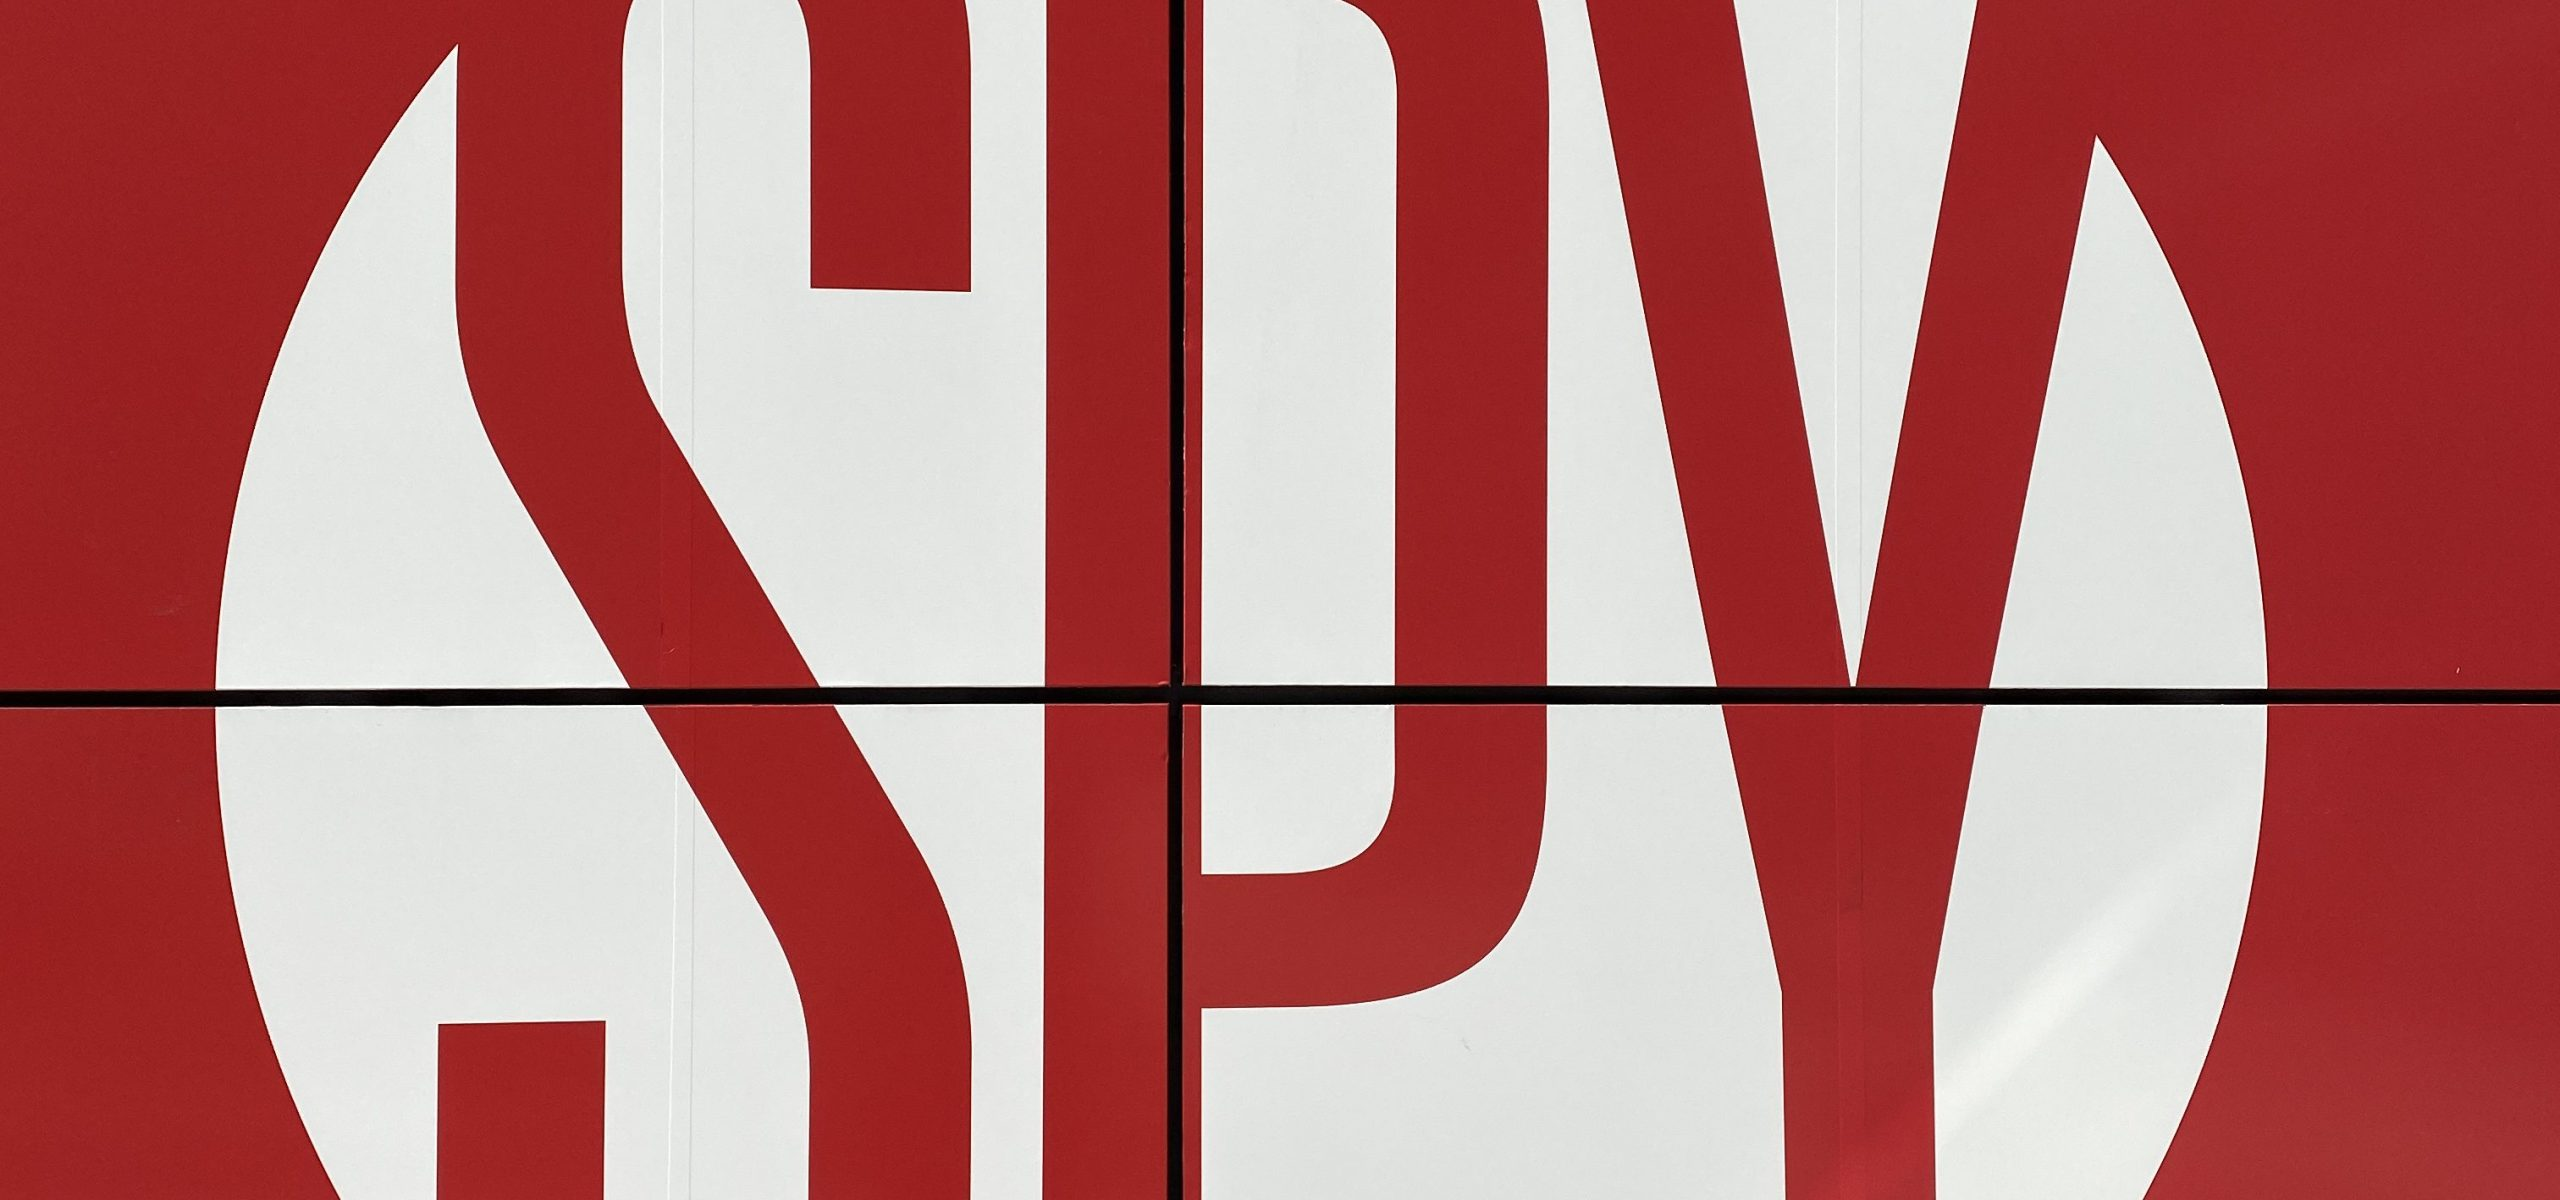 International Spy Museum, Washington DC